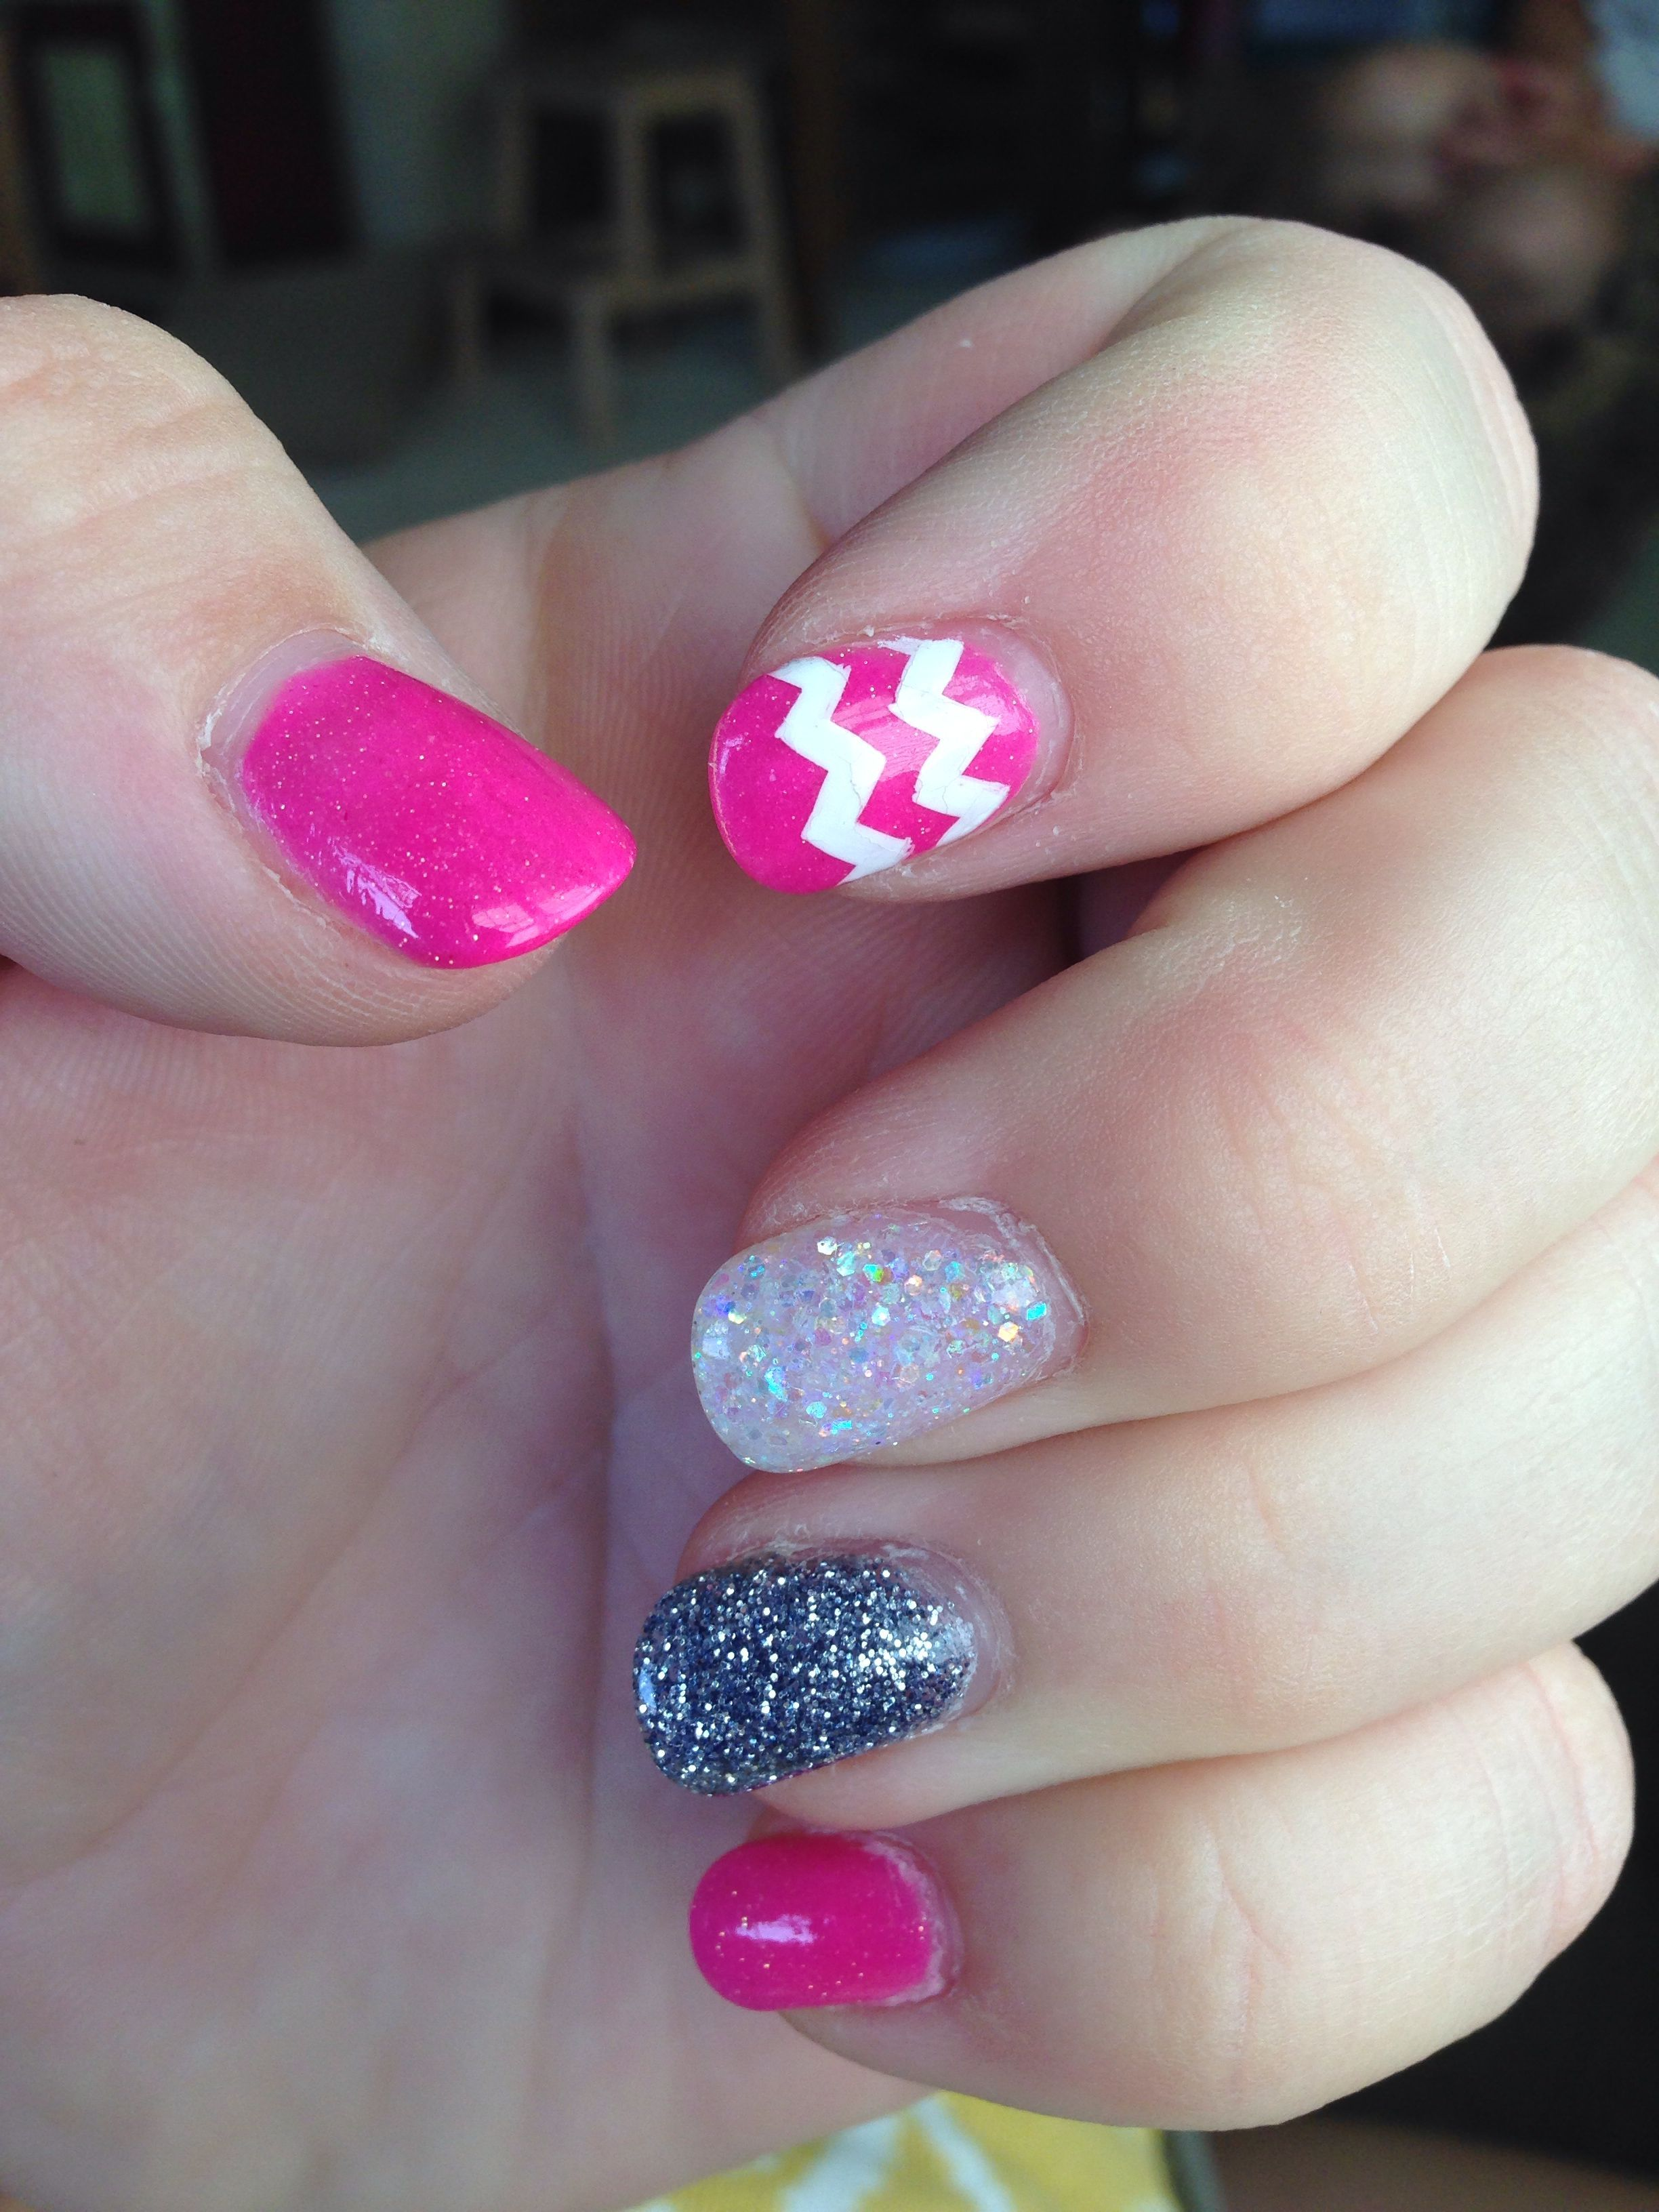 Conference Thirtyone National Sparkly Acrylic Chevron Denver White Black Nails Pink Inpink White Black Sparkly Acrylic Na Nails Acryl Thirty One